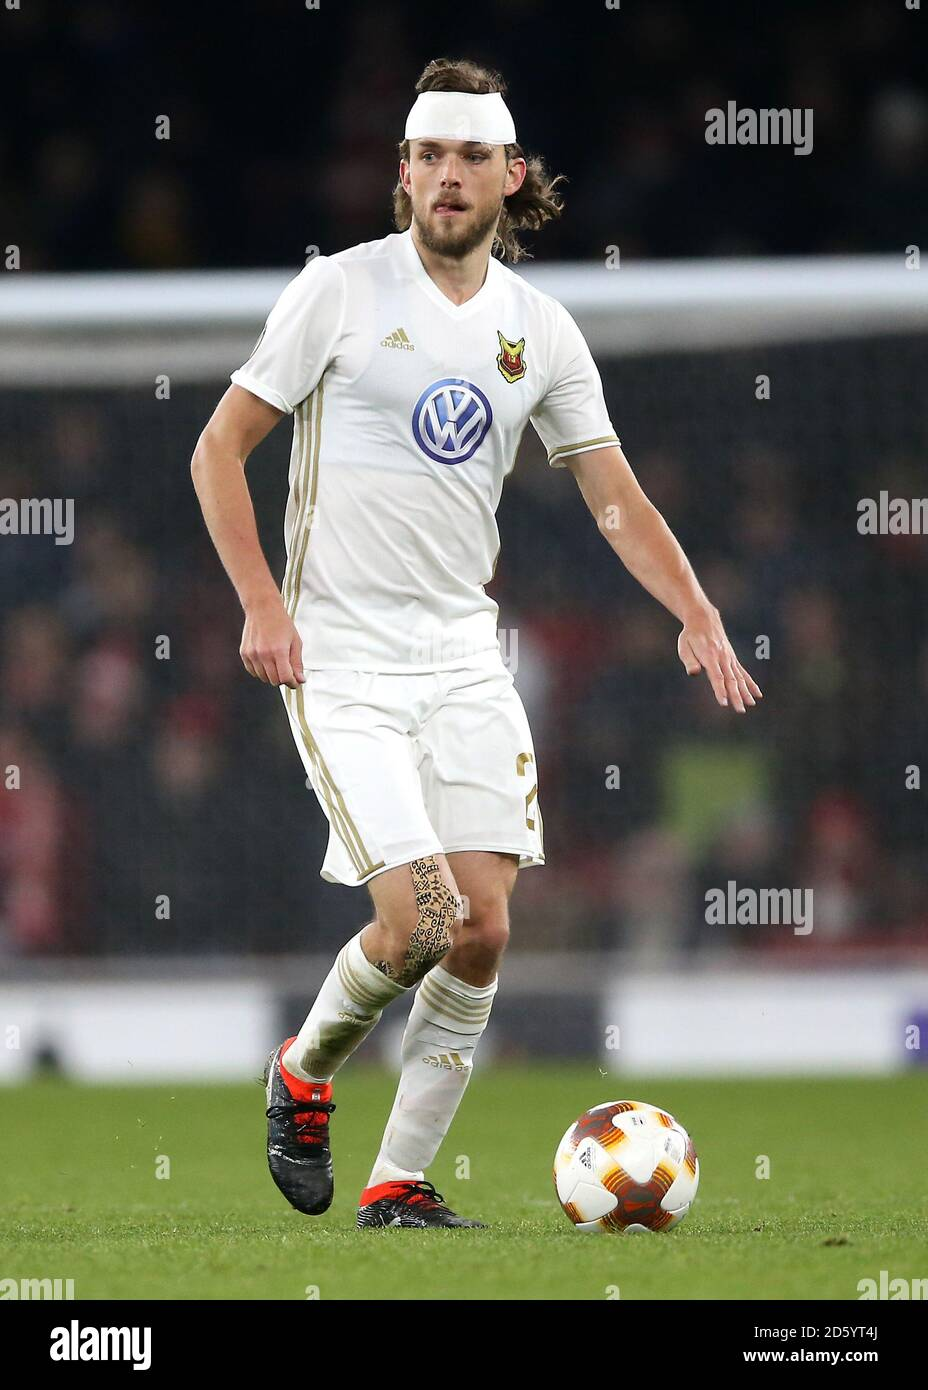 Ostersunds FK's Tom Pettersson Stock Photo